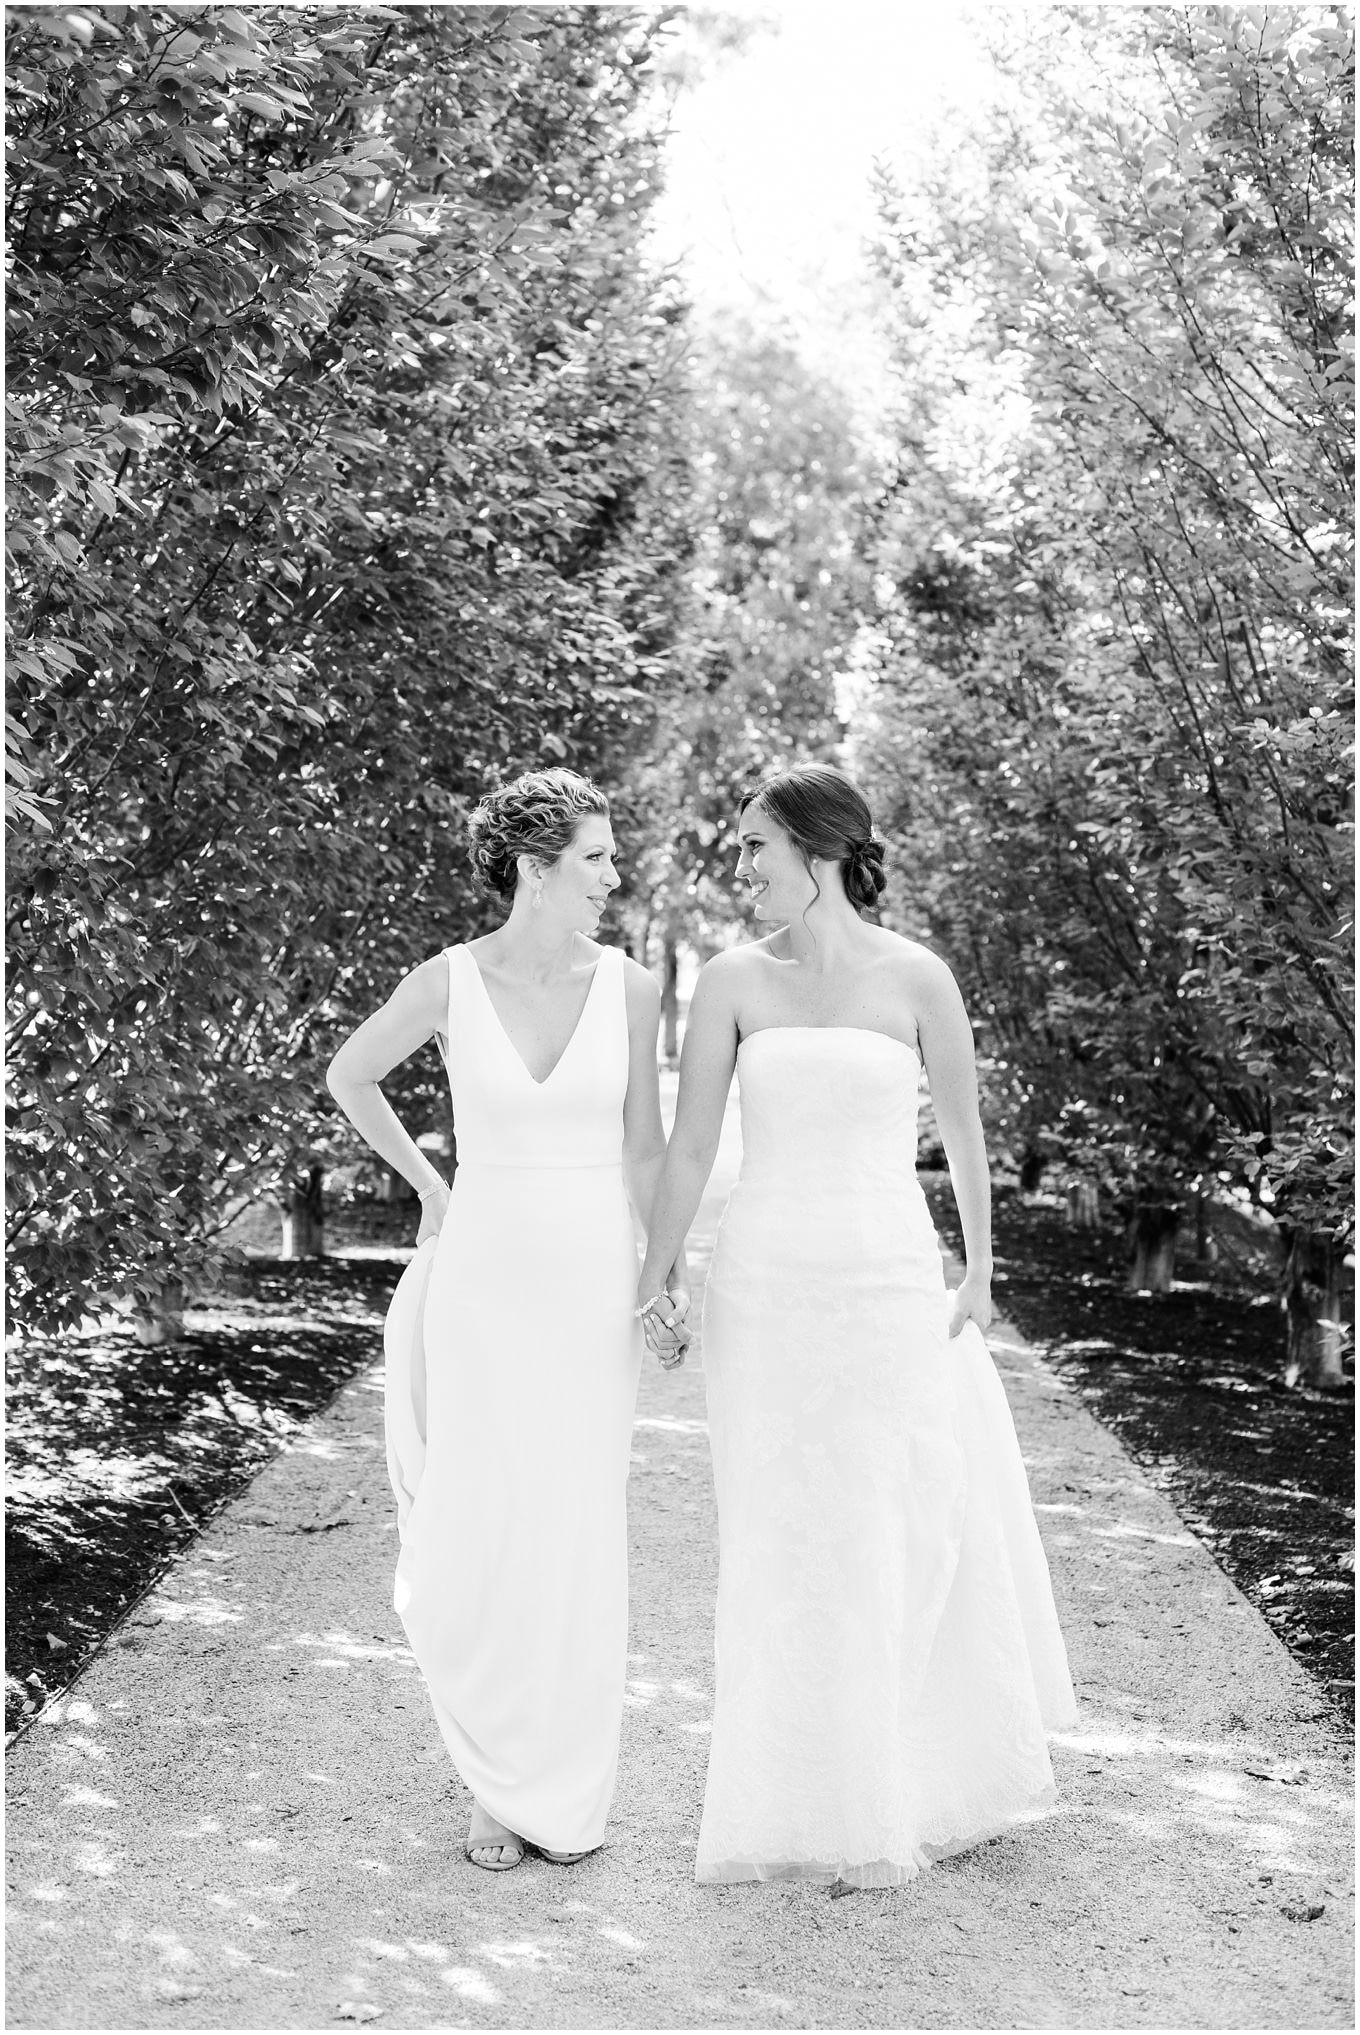 Adam Lowe Photography, Columbus, Ohio, Wedding, Gay, Brides, Franklin Park Conservatory, FPC, Fine art wedding, Wedding photography, Wedding photographer, love, hilton, short north, stylish wedding, wedding details, exhale events, outdoor wedding